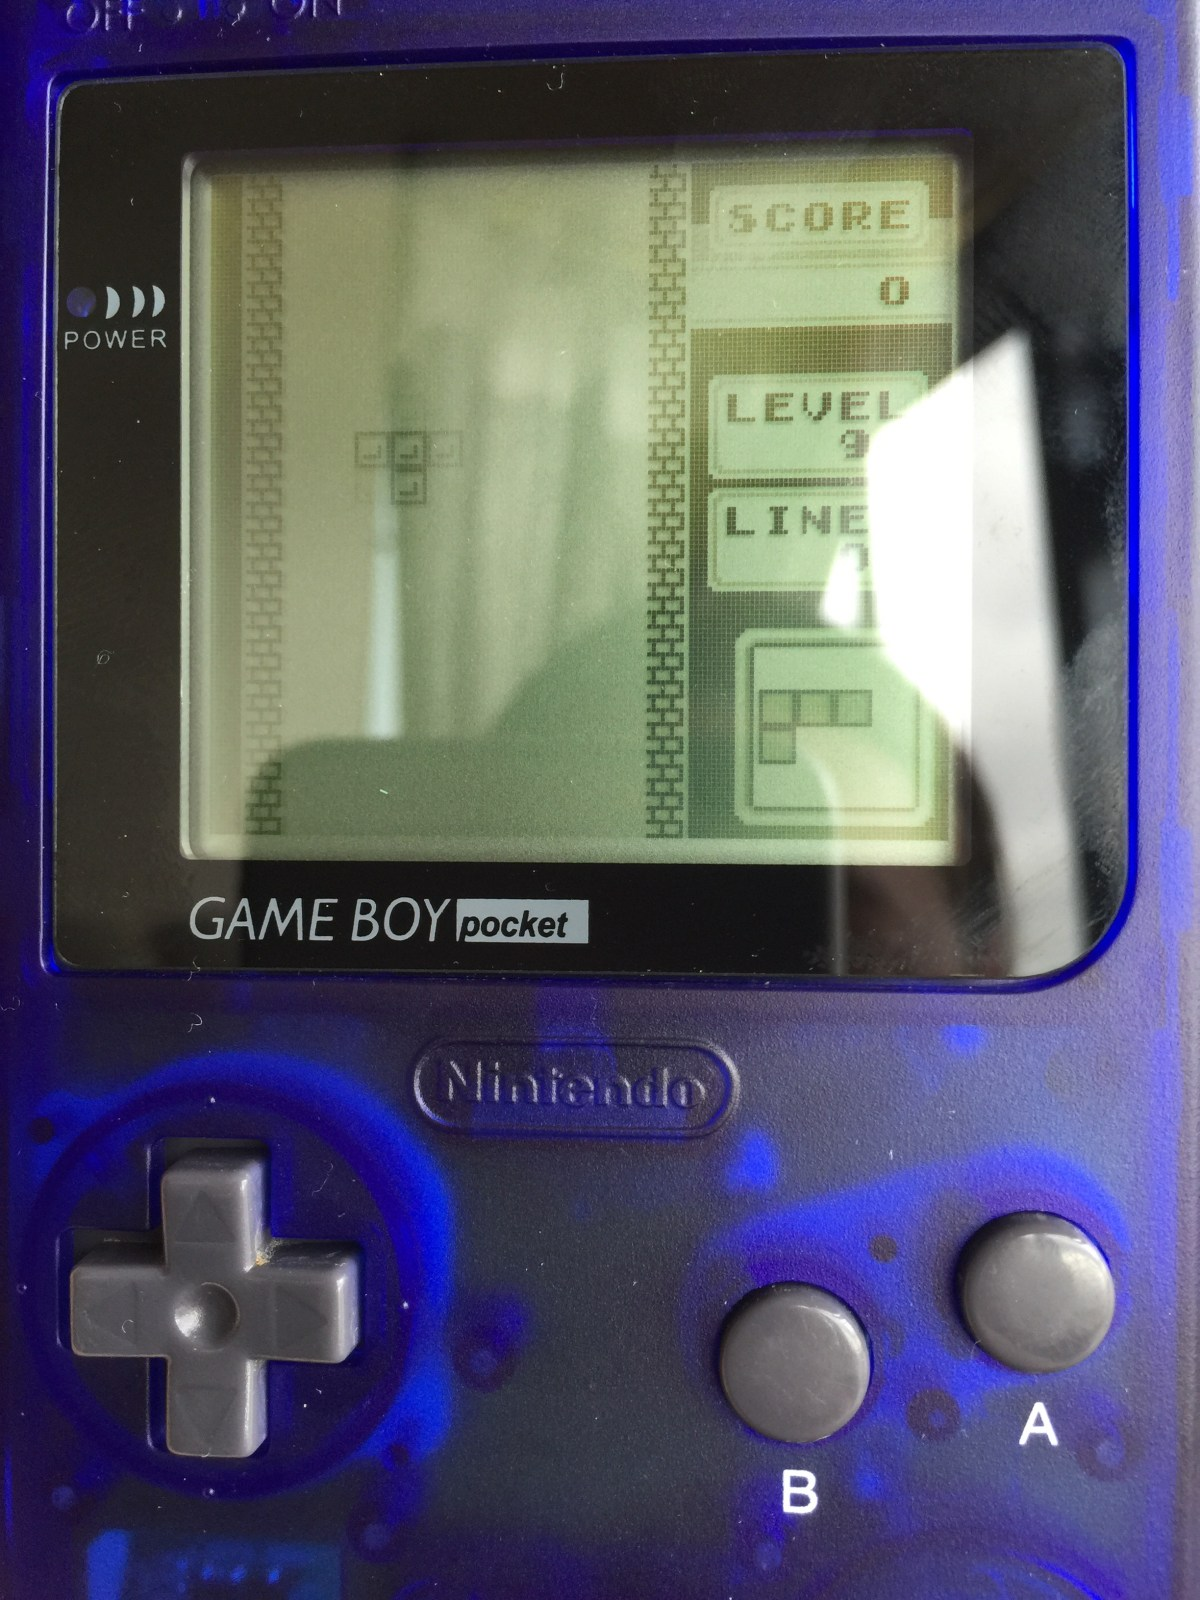 Gameboy Pocket next to my gba